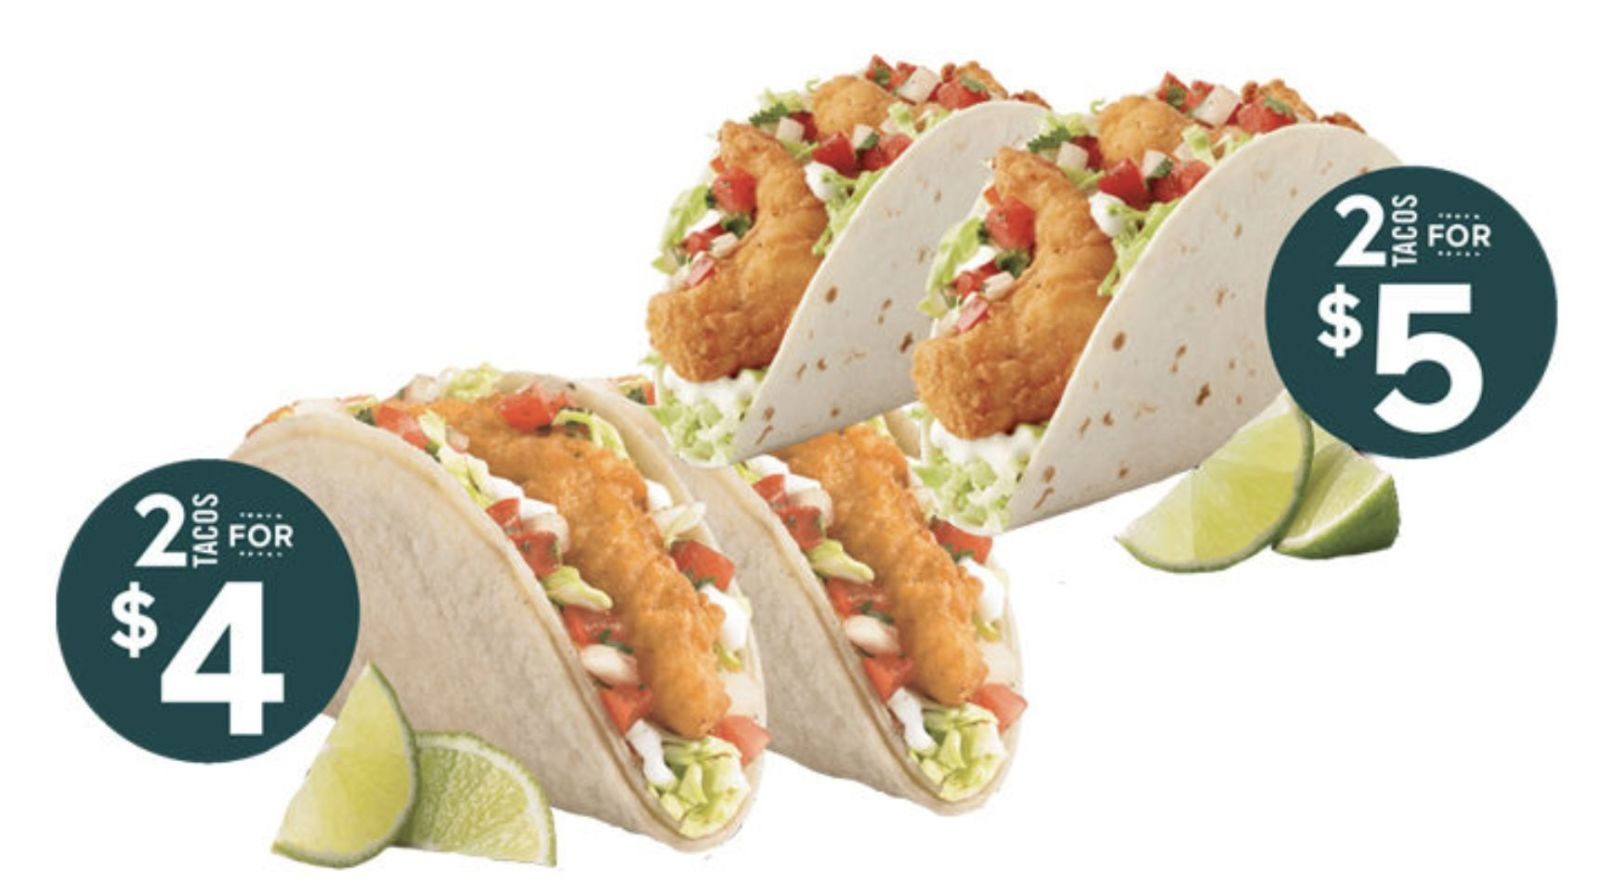 Del Taco: Seafood season just got better with Jumbo Shrimp Tacos